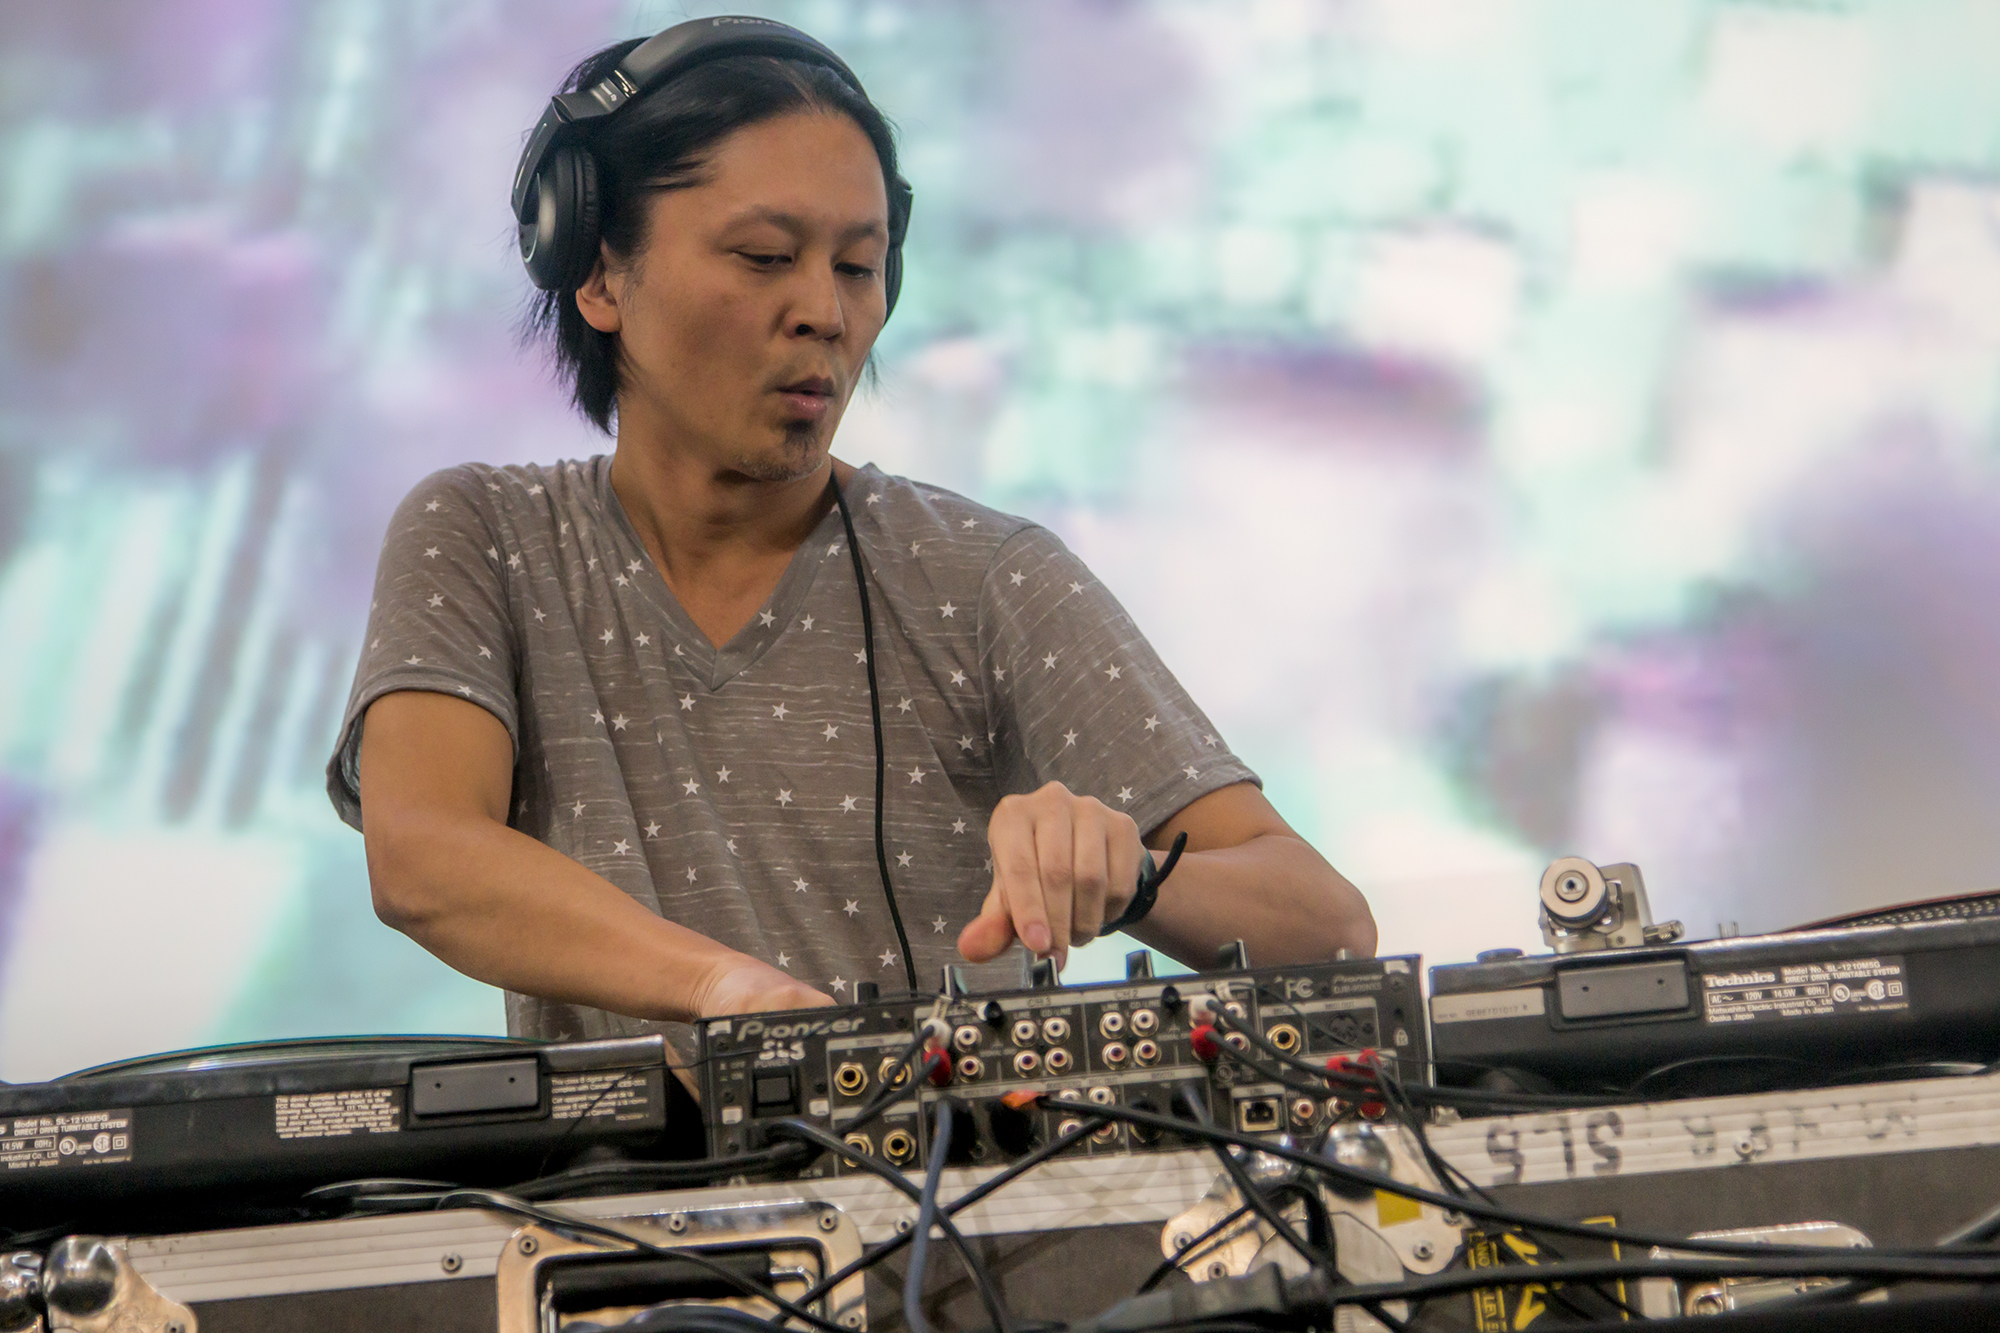 «One day I decided to send my own music to my most favorite record label  R & S» – Ken Ishii